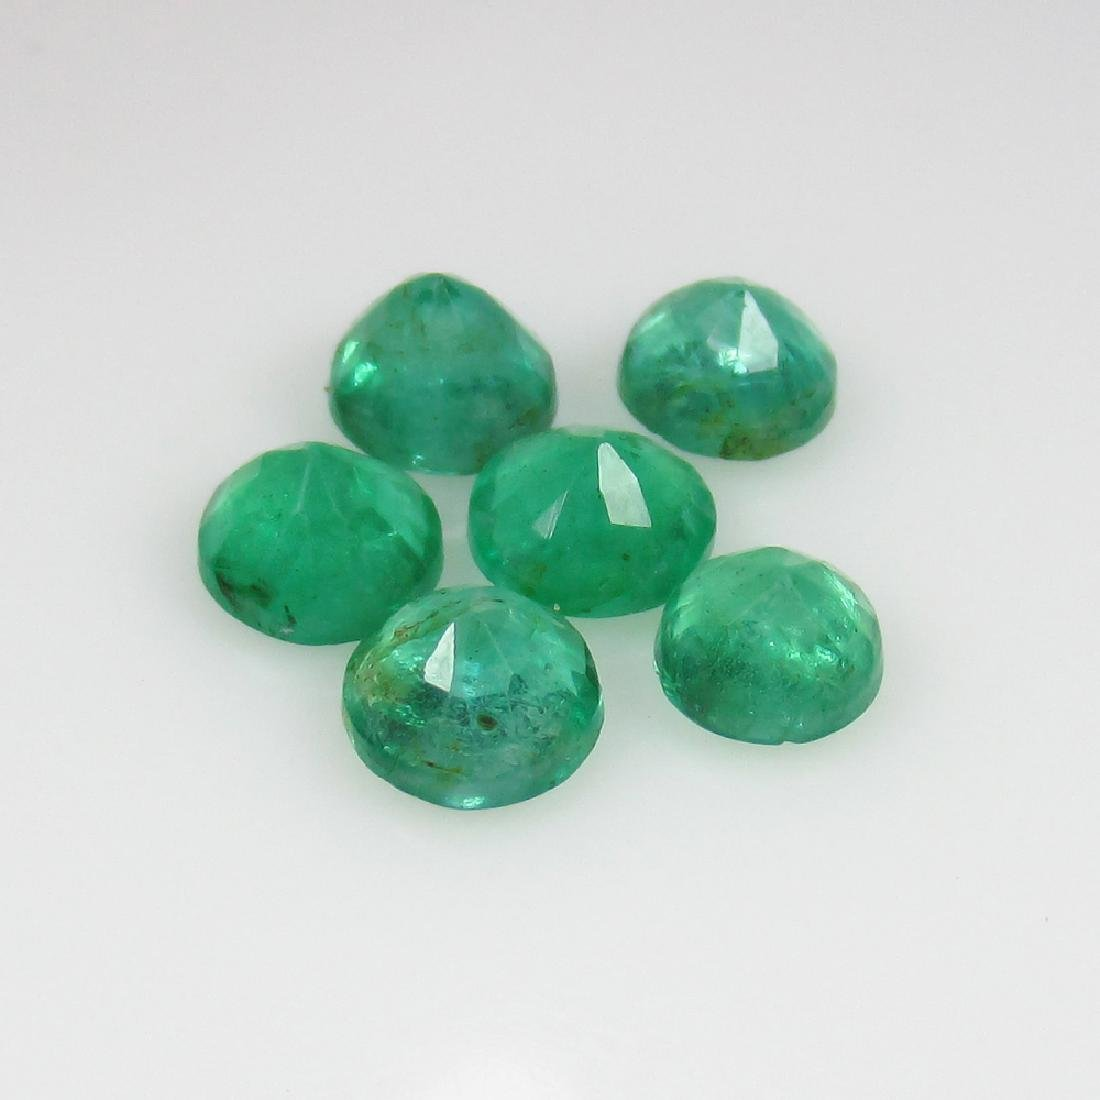 2.28 Ct Genuine 6 Loose Zambian Emerald Round Lot - 2